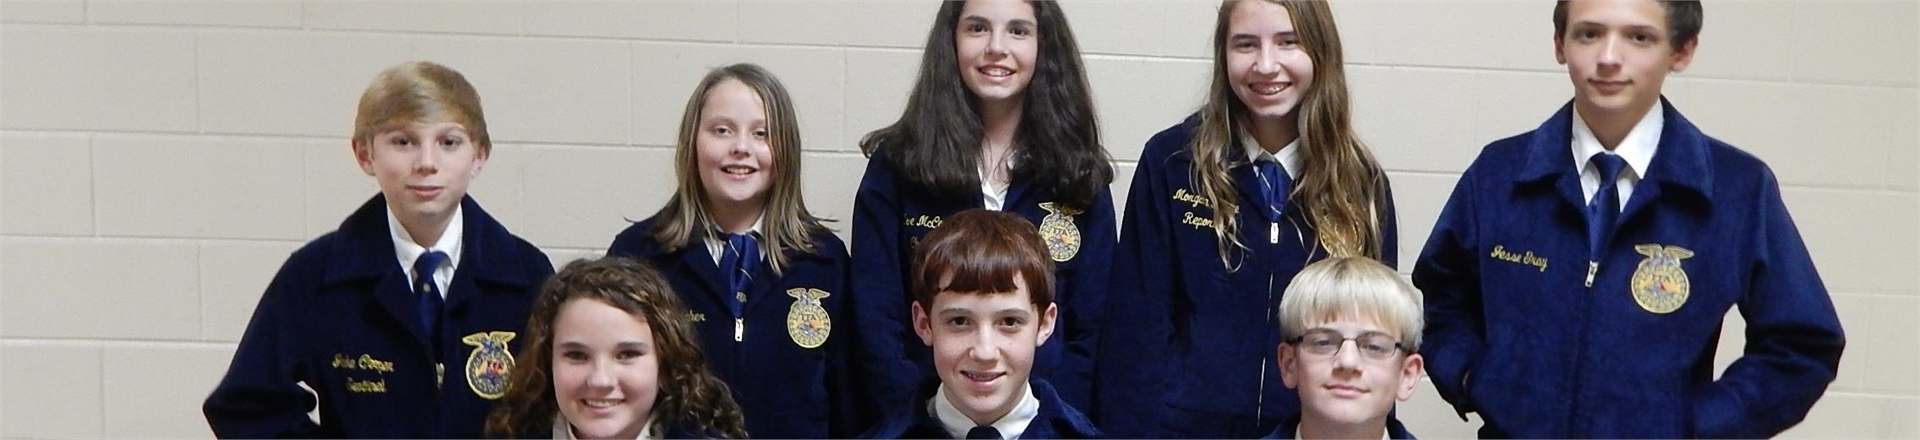 Connecting with the future - FFA Officers